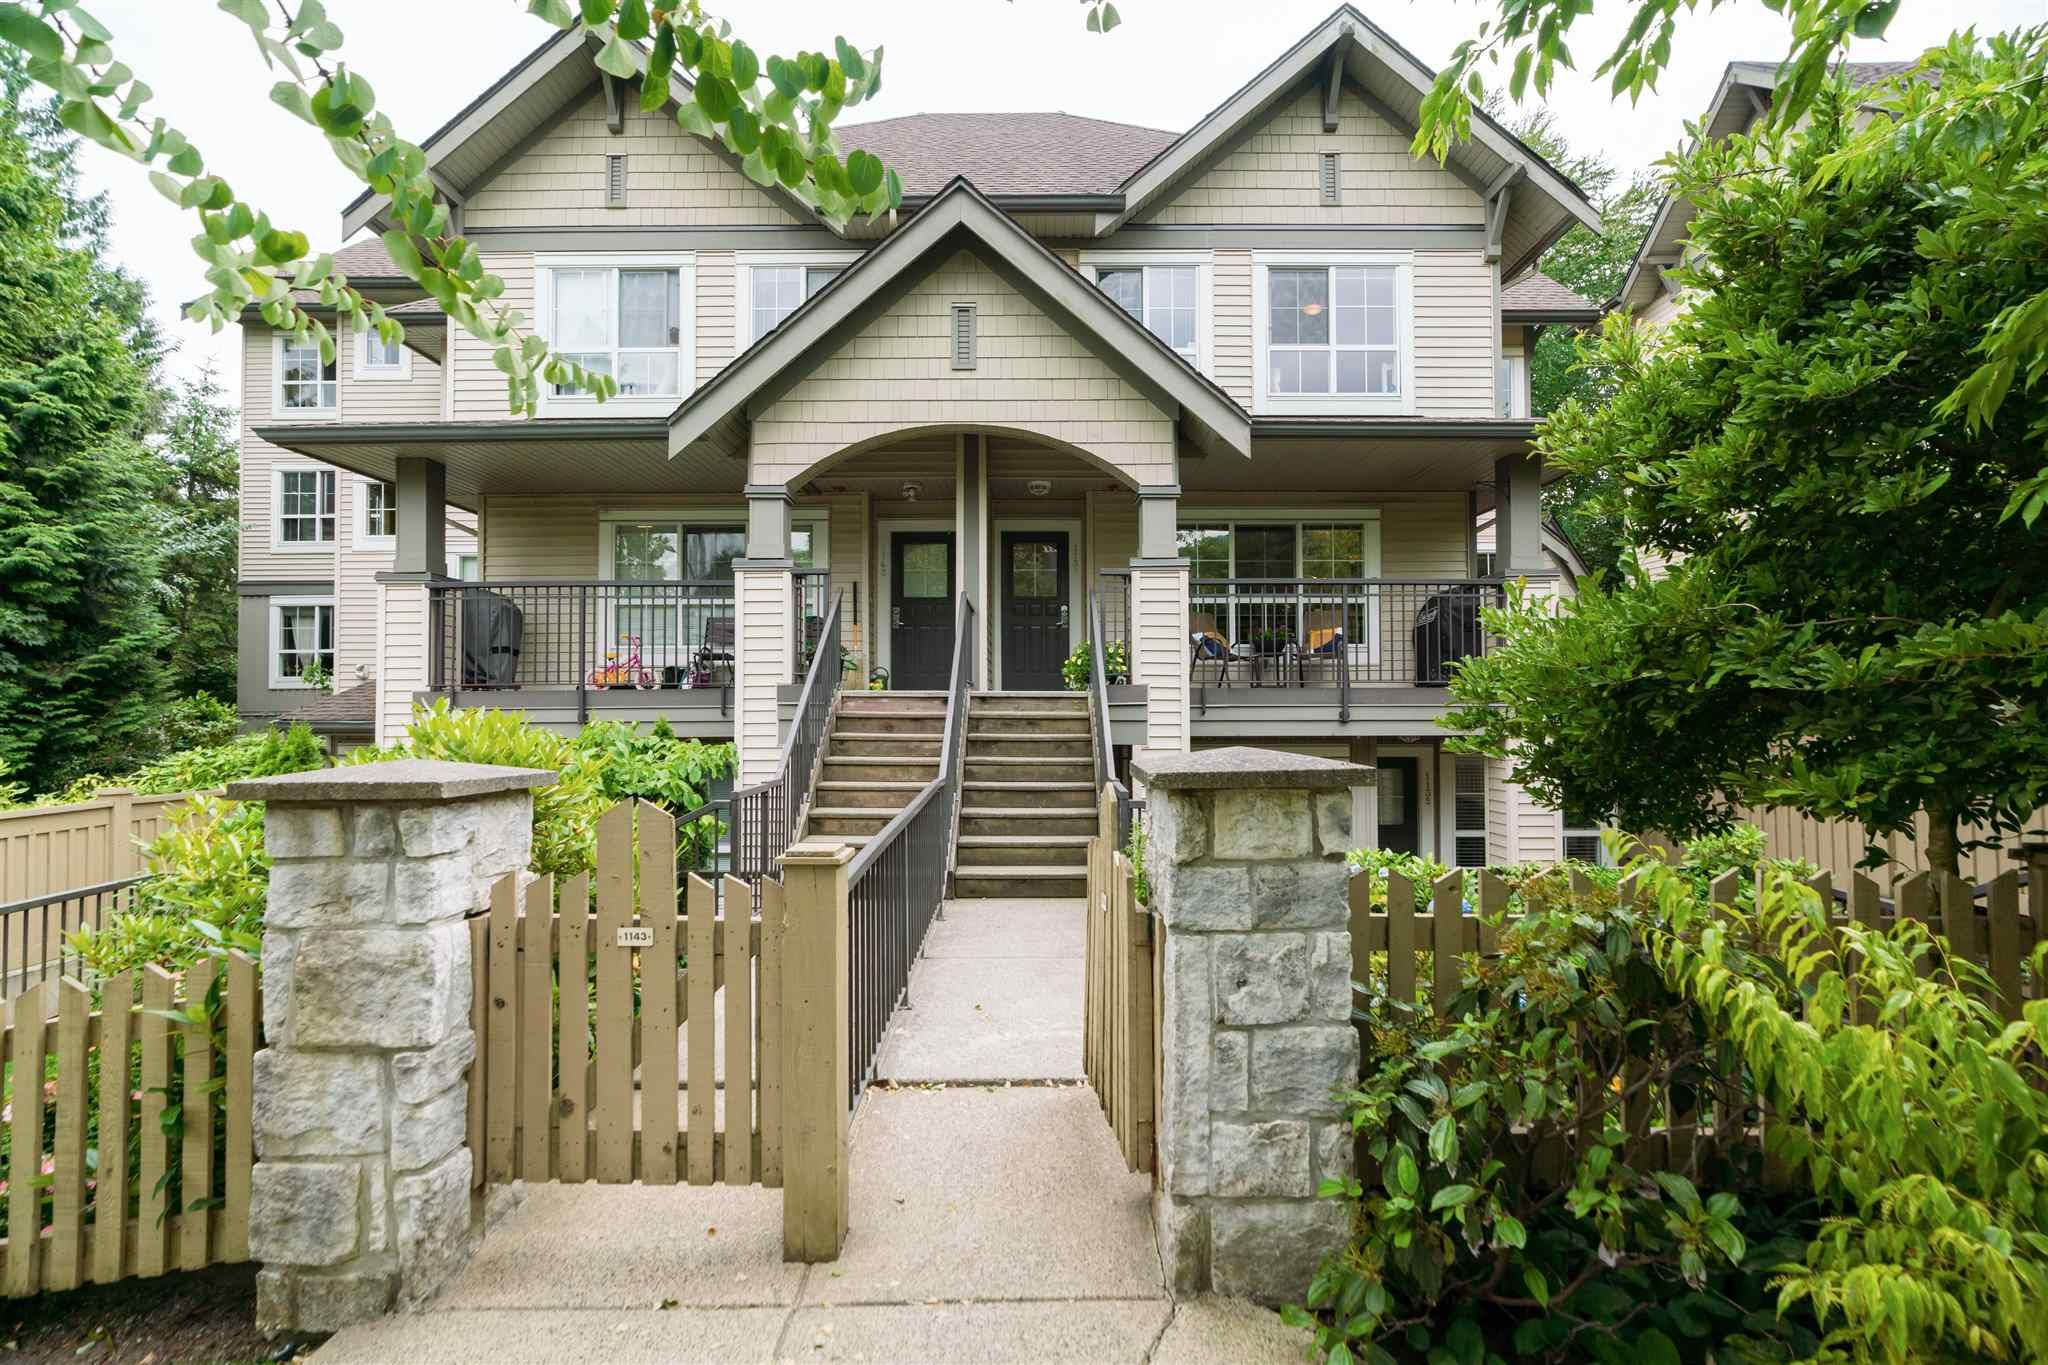 Main Photo: 1139 ROSS ROAD in North Vancouver: Lynn Valley Townhouse for sale : MLS®# R2601894